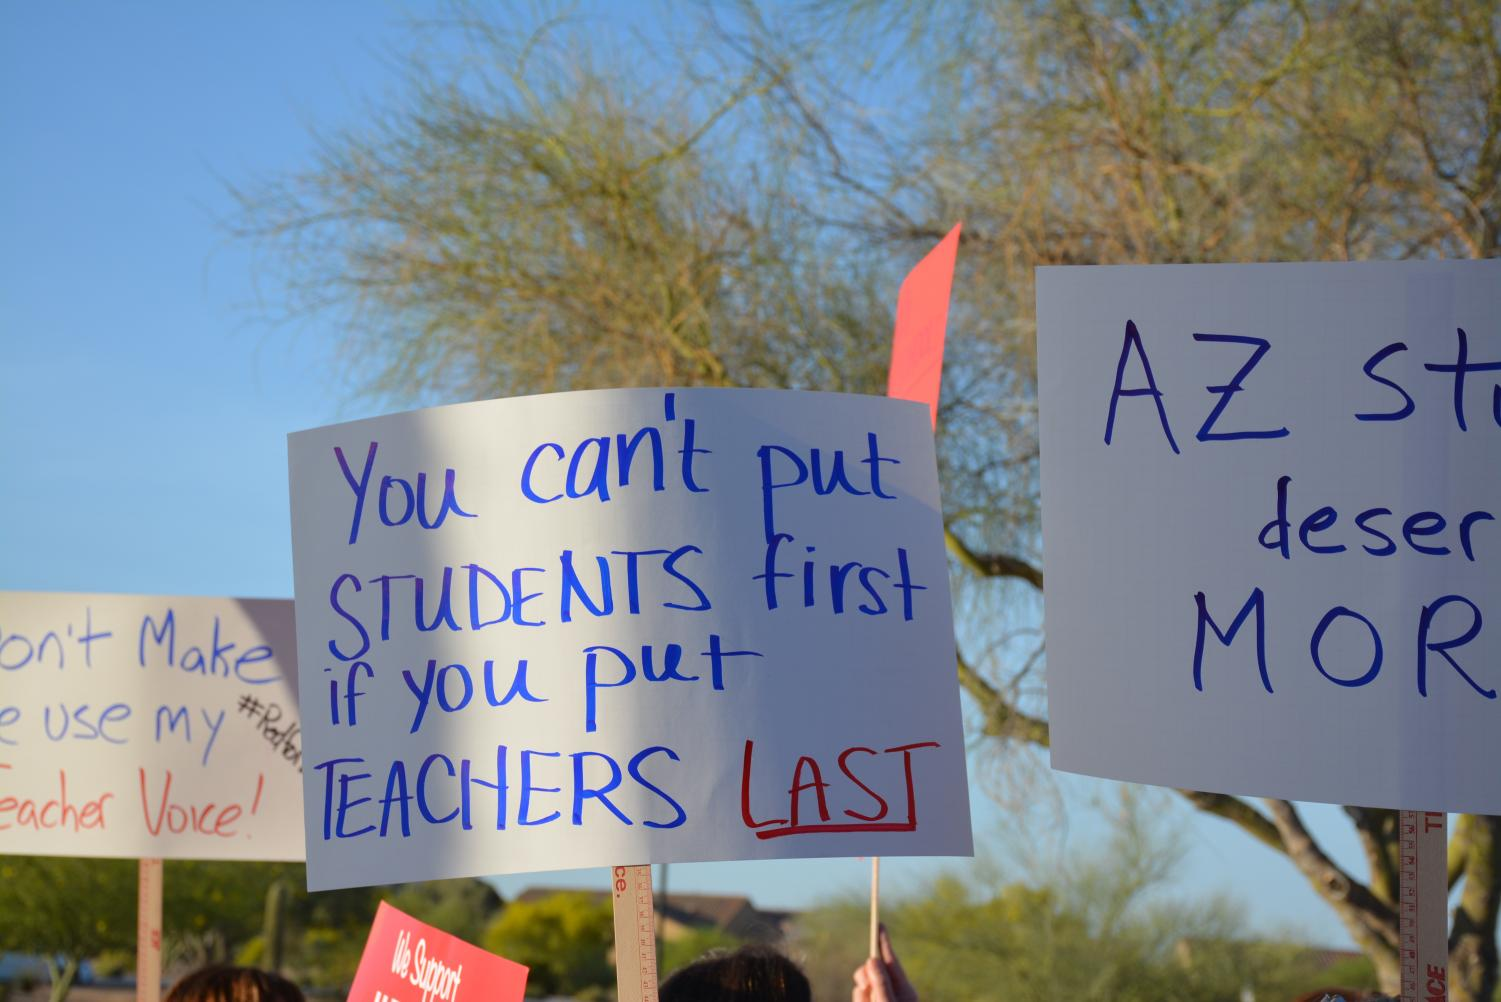 The+sign+says+it+all%2C+teacher+wages+need+to+increase